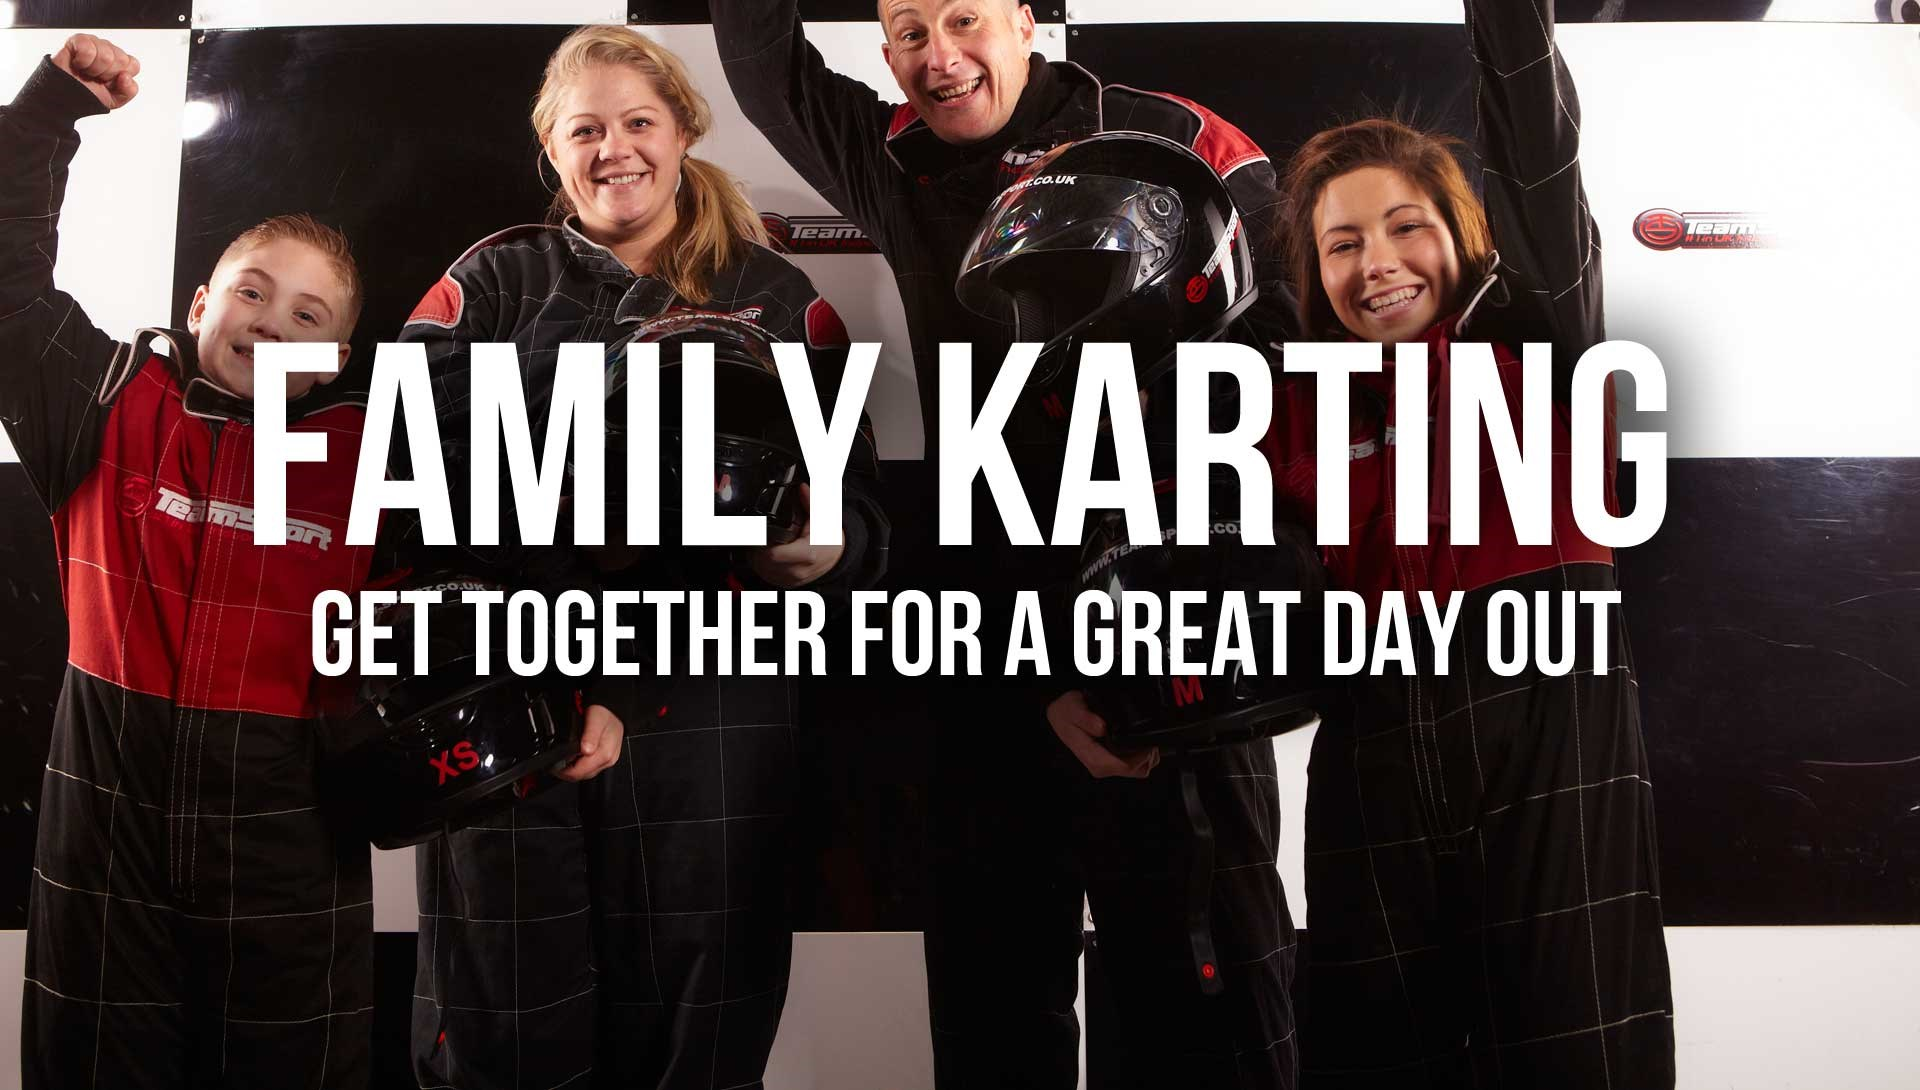 Indoor Go Karting  Events Brighton - Family